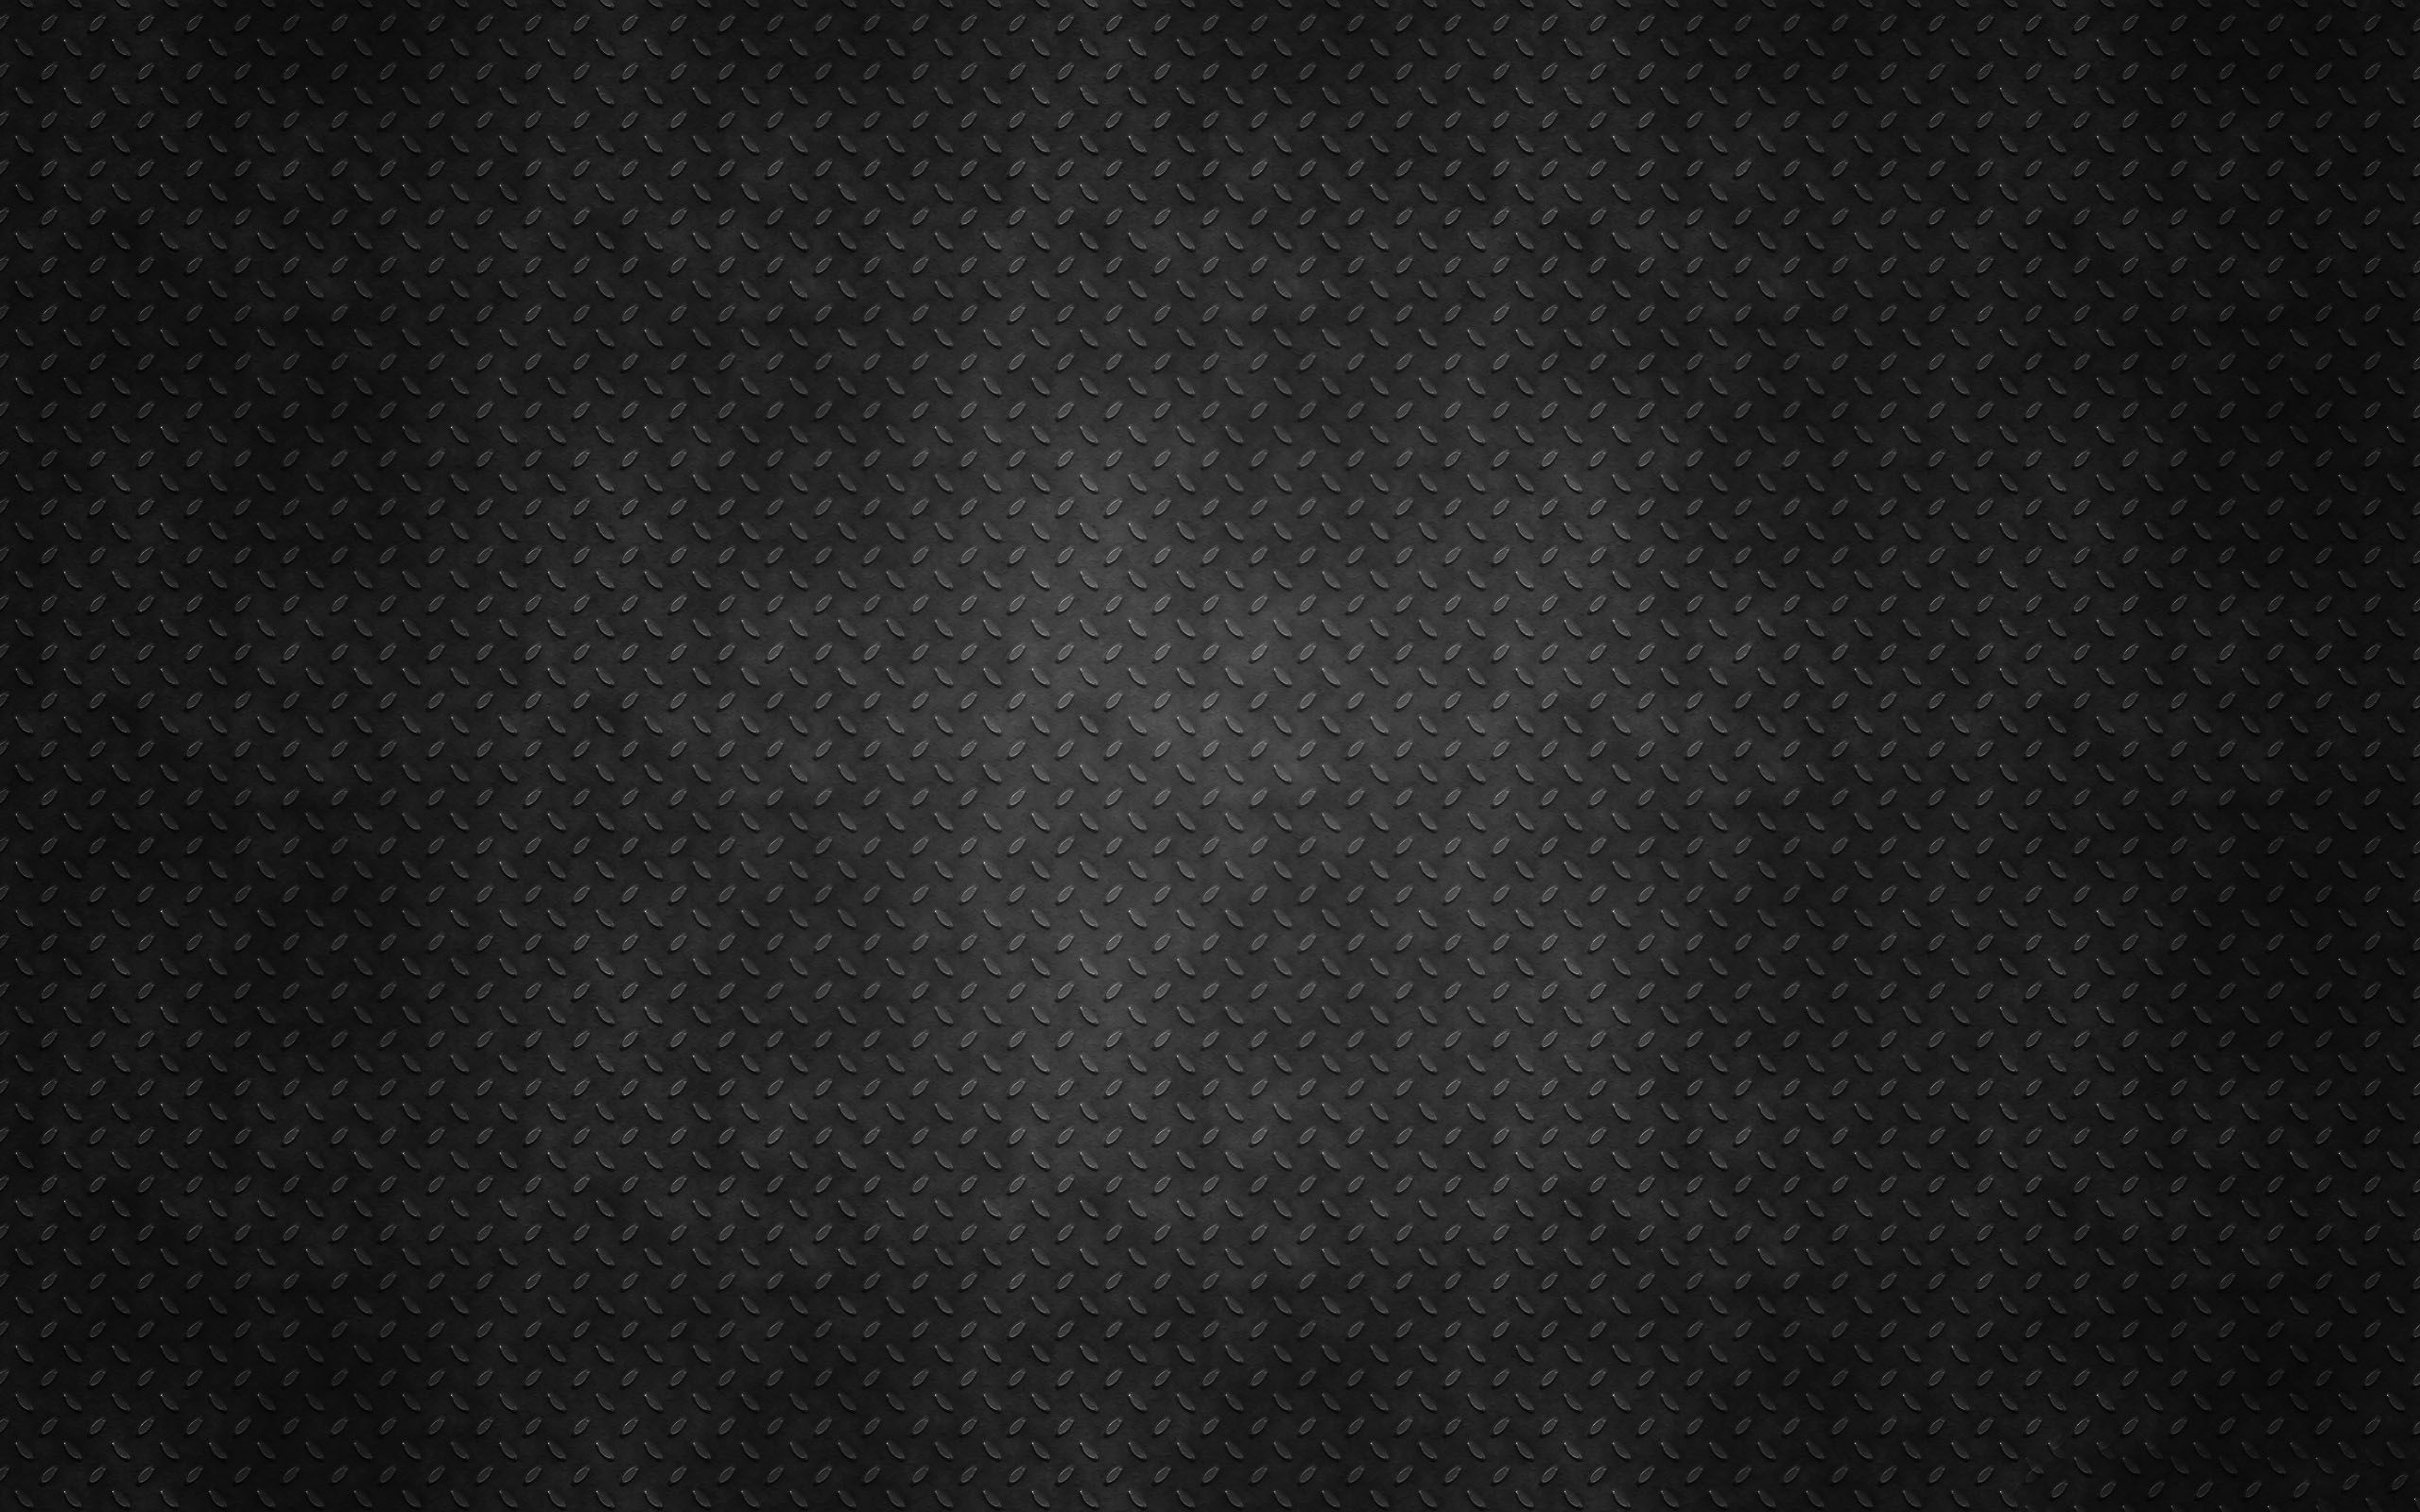 Dark Textures clipart back Abstract cool black hd